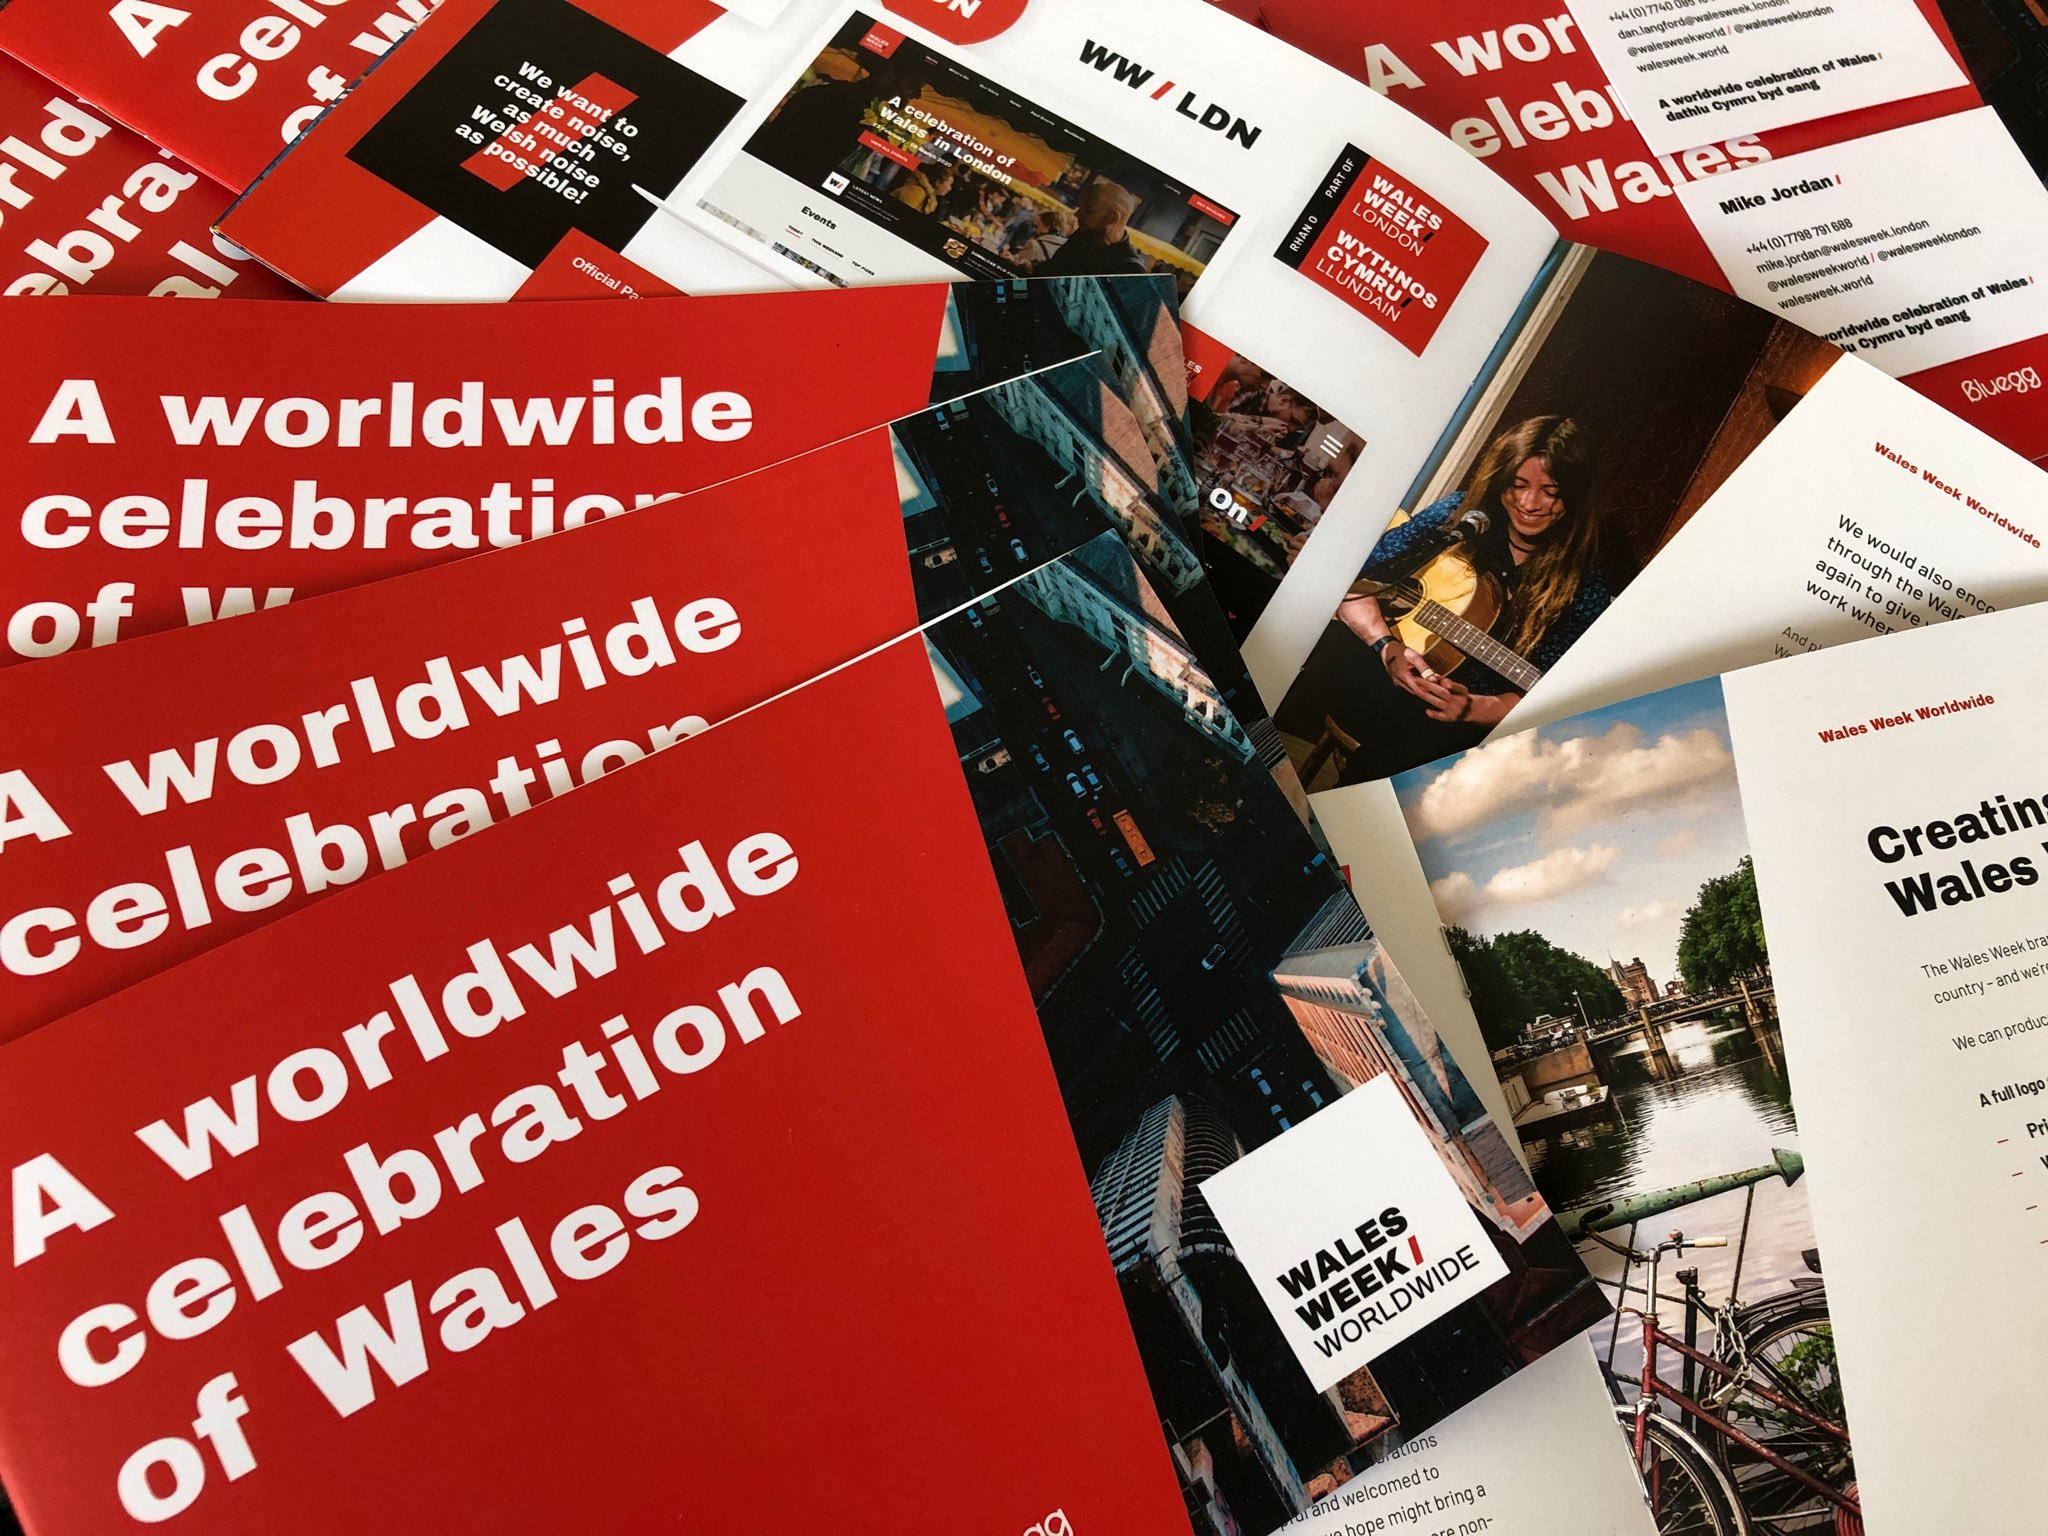 Wales Week Worldwide | Fly 2 Wales